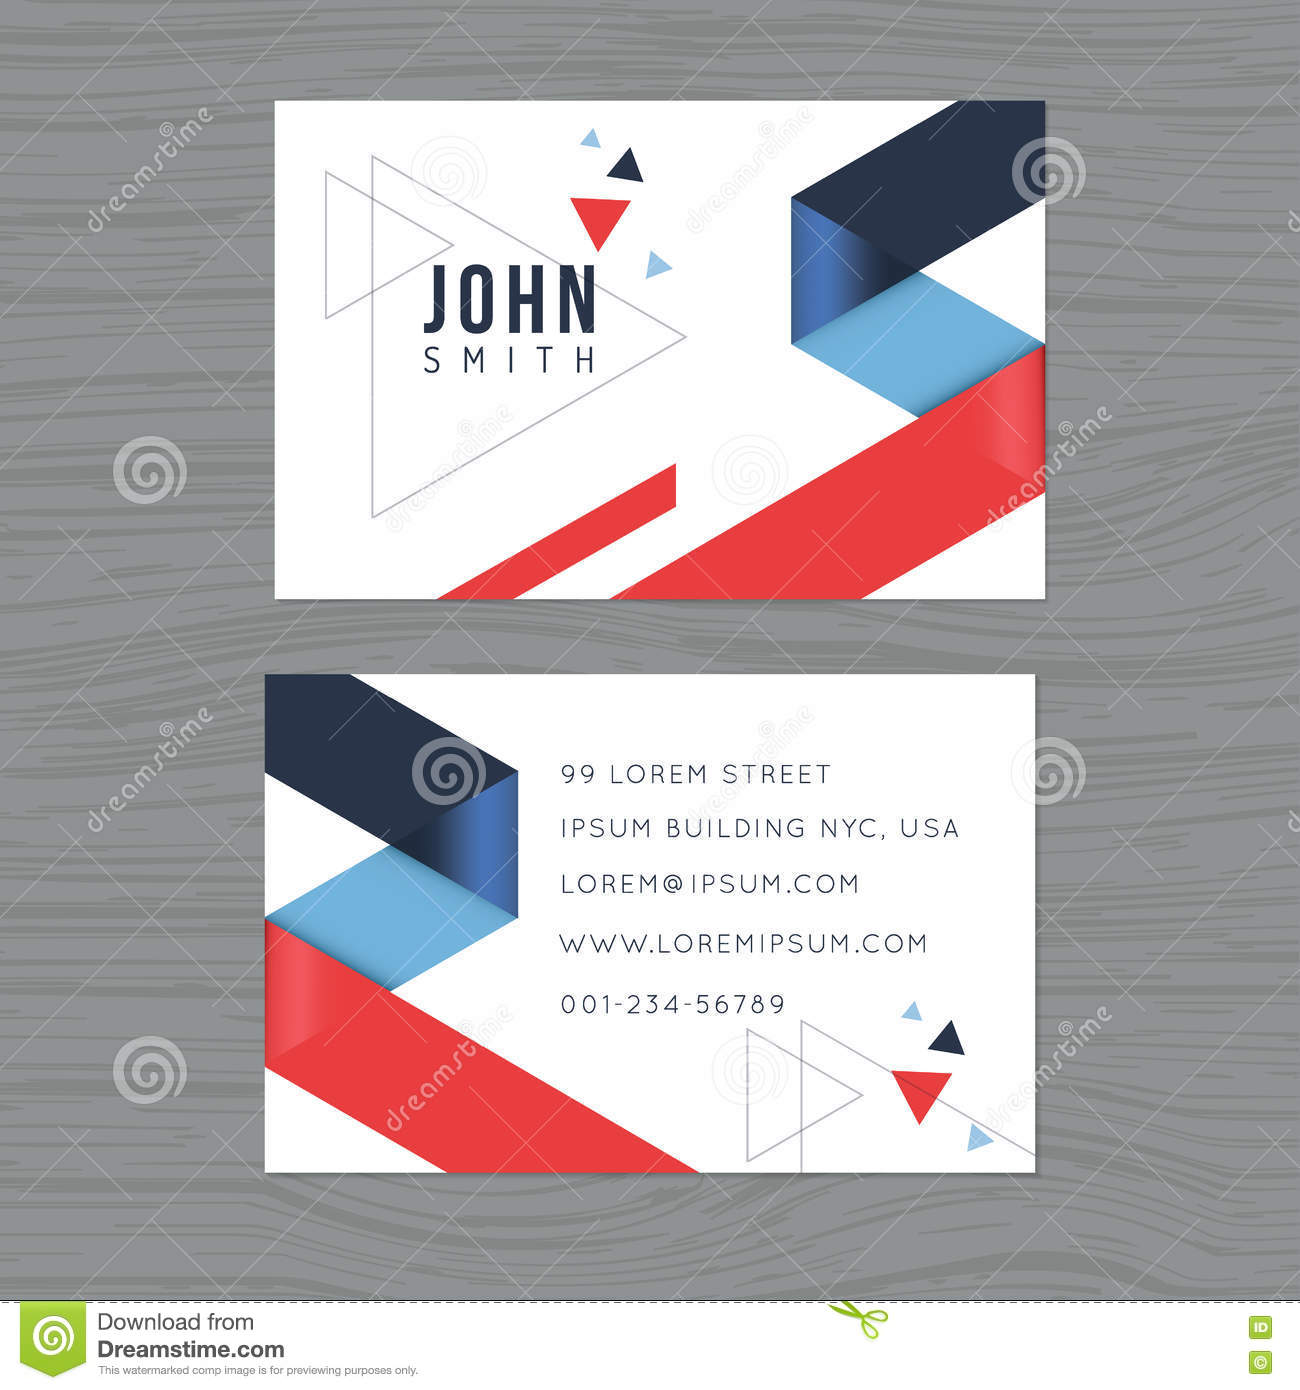 Modern and clean design business card template in blue and red download comp flashek Choice Image